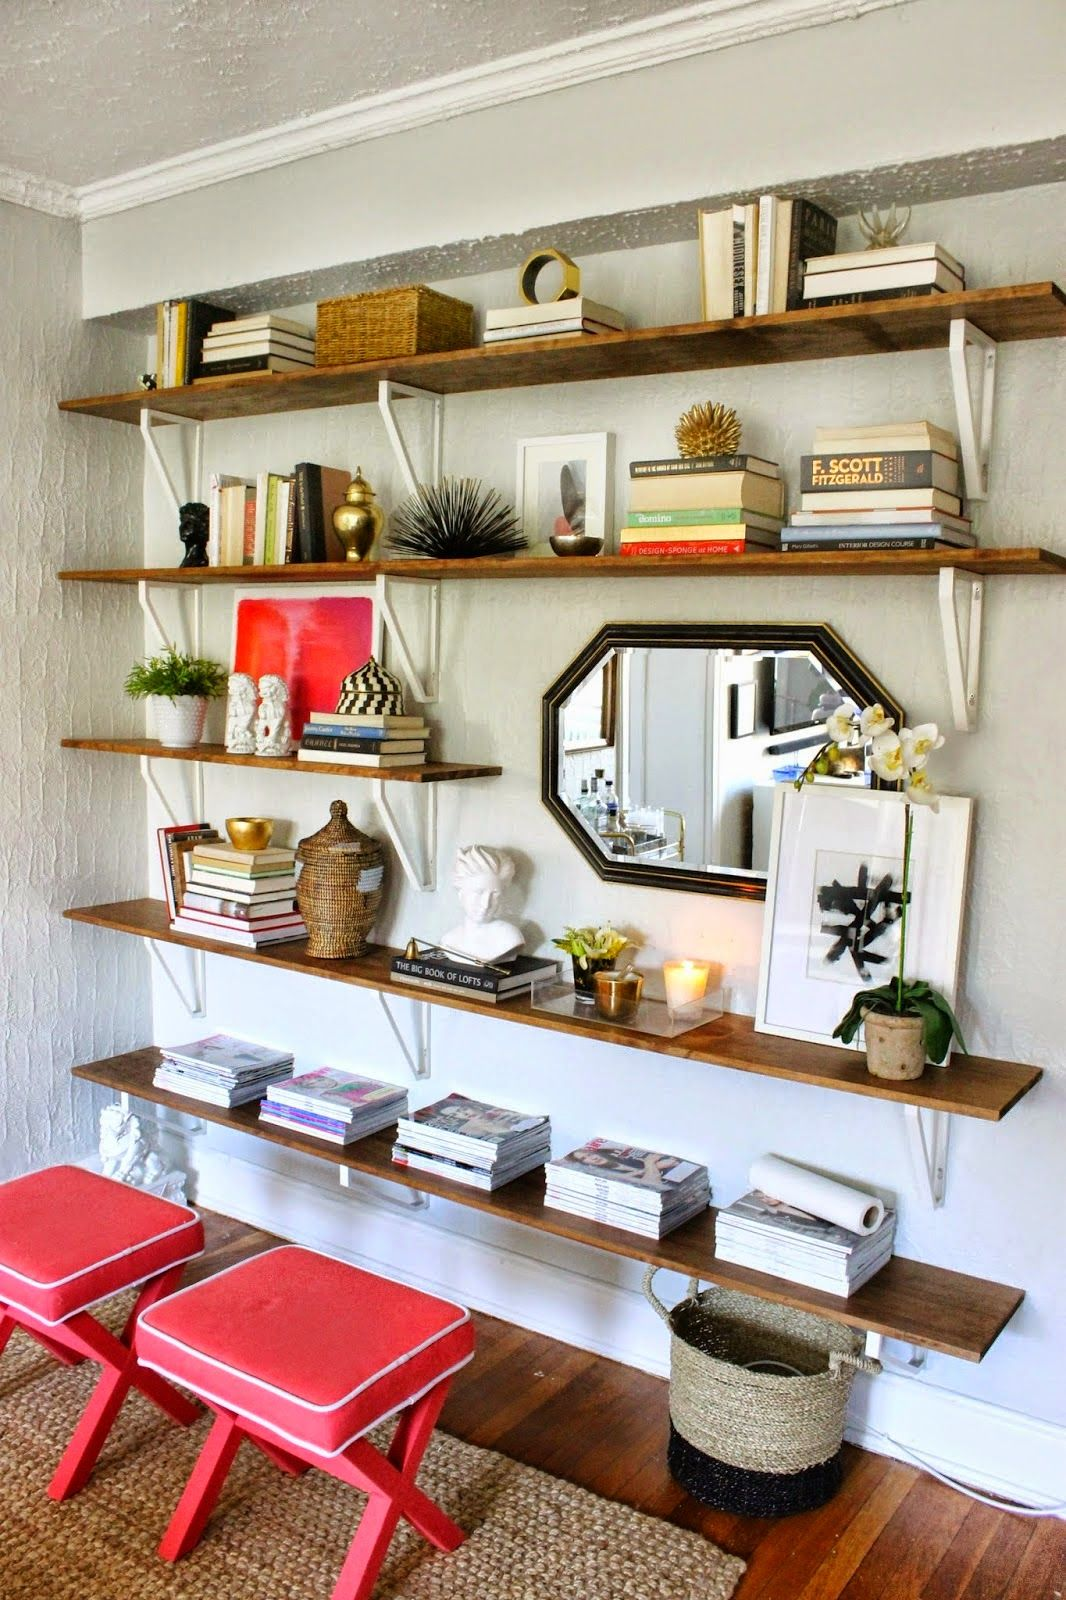 Find this Pin and more on Office. Ikea Hacked Shelving ... - Image Spark - Image Tagged